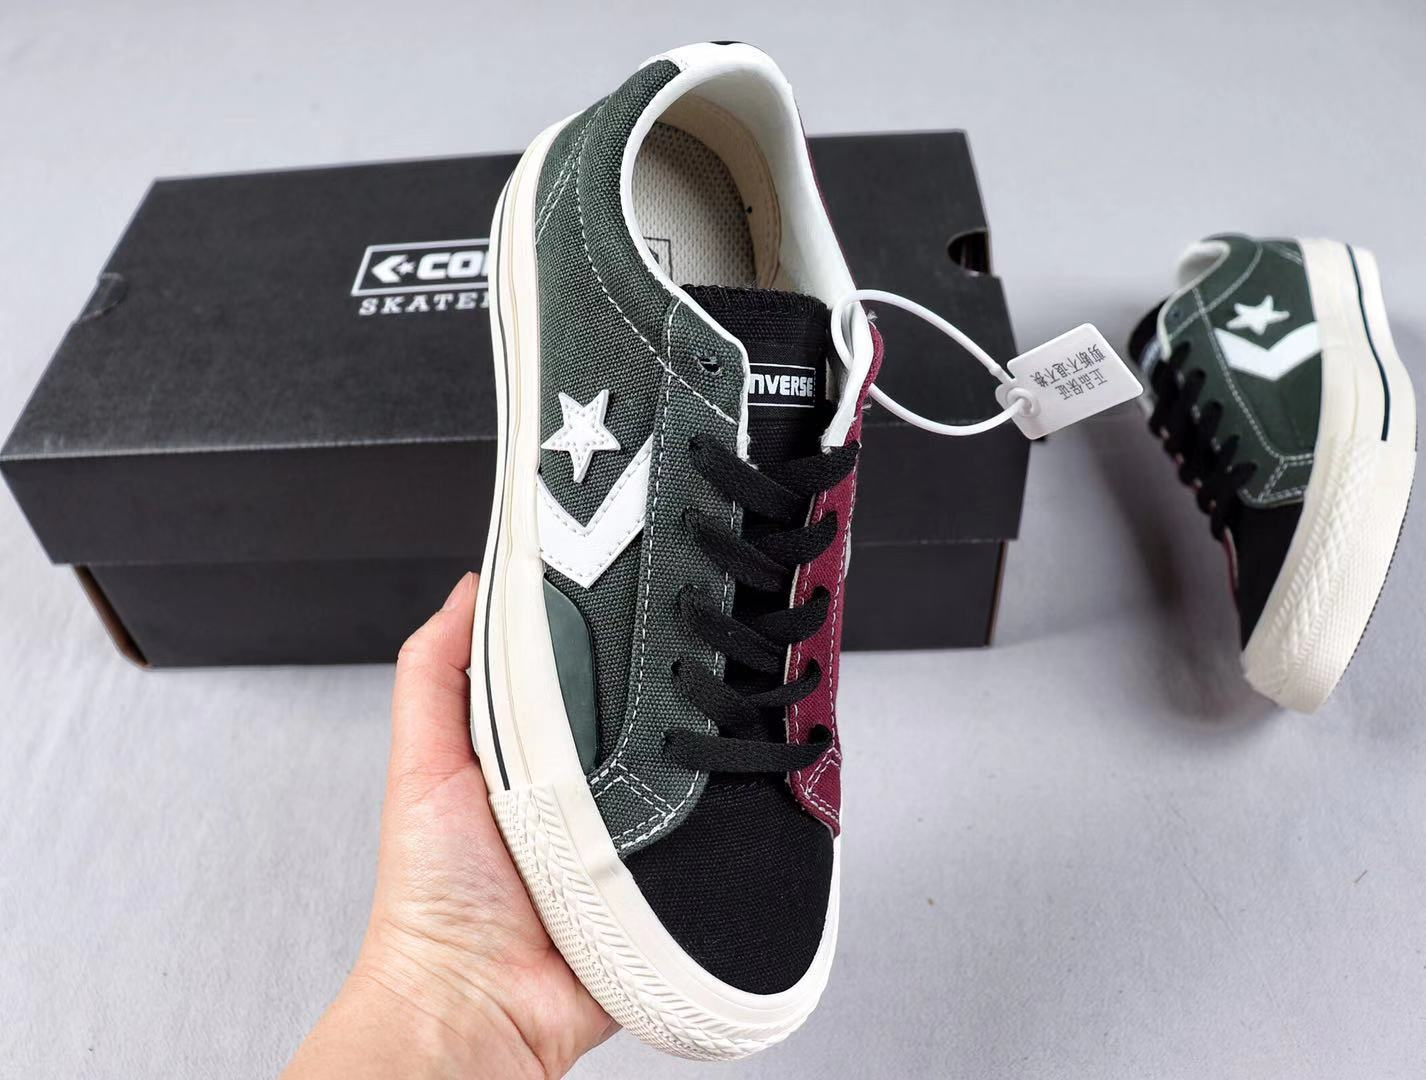 Converse Skateboarding Burgundy/Black-Green Casual Shoes To Buy